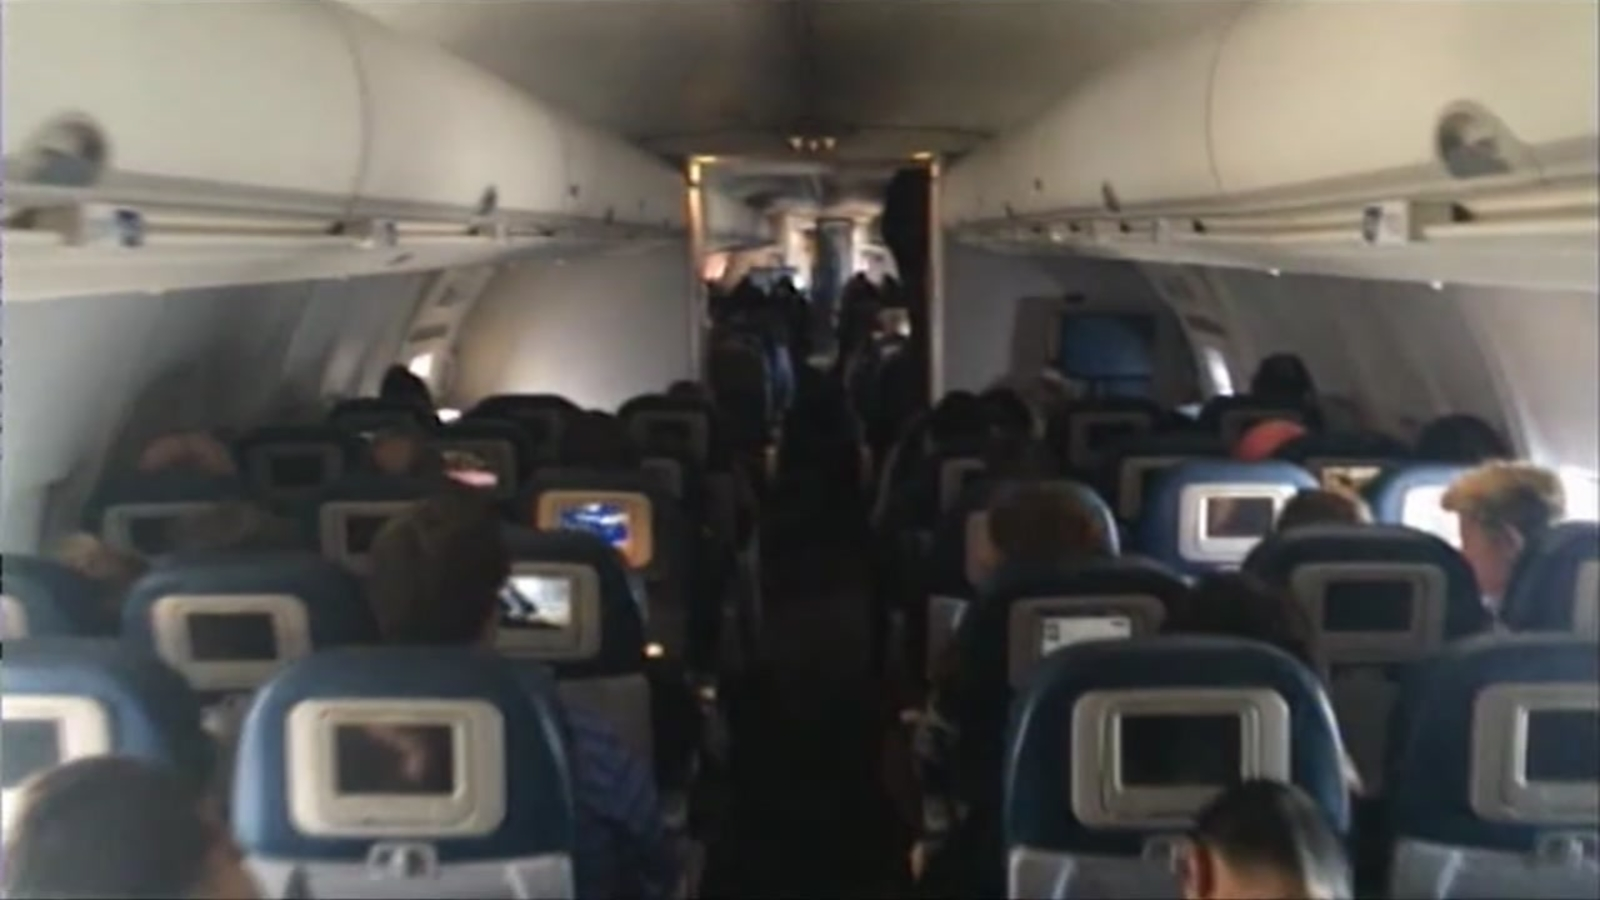 Sick right before your flight? This San Francisco family learned a lesson about airline refunds